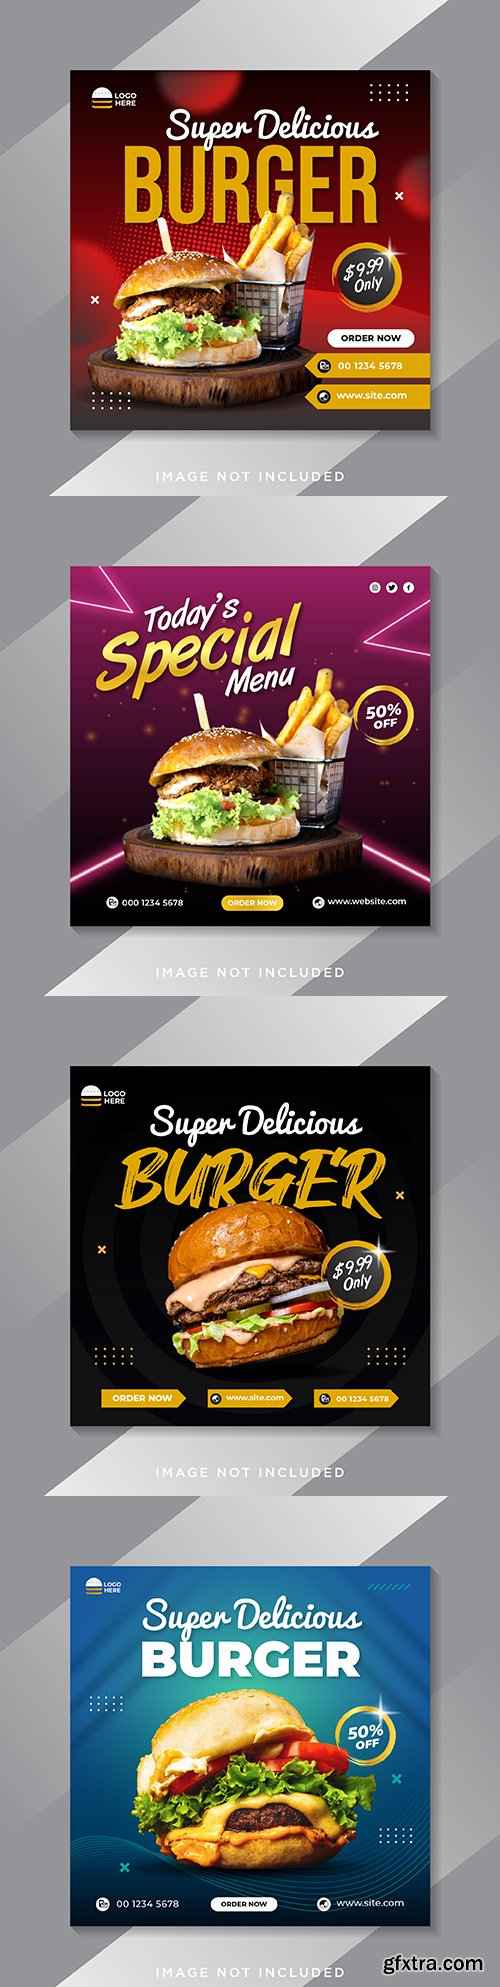 Social media message template about food menu and burger restaurant